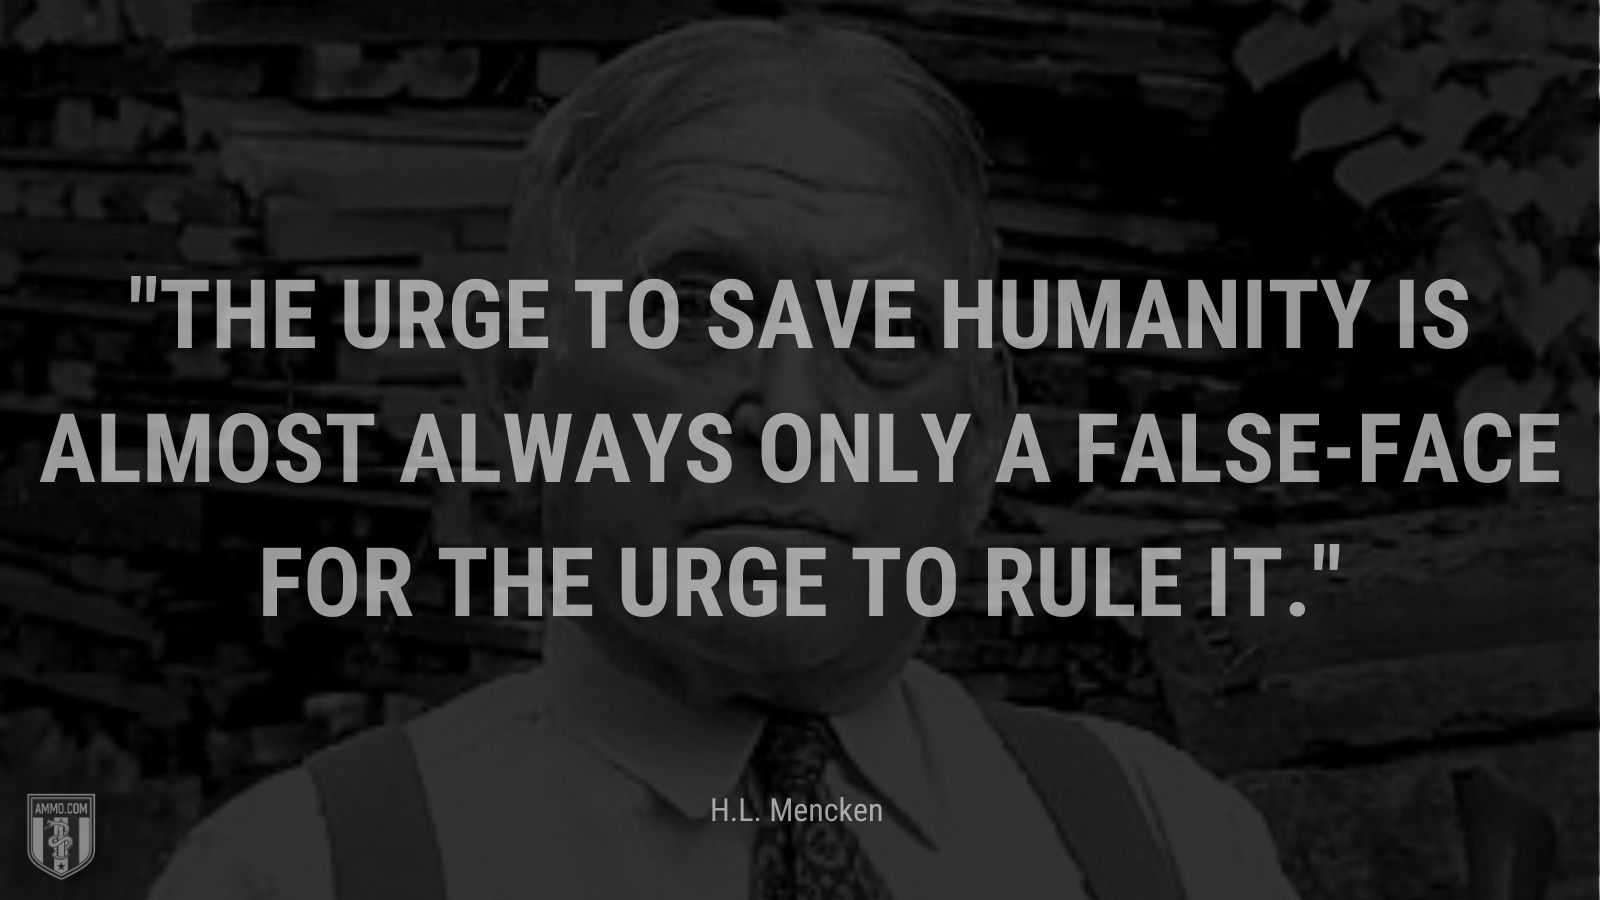 """""""The urge to save humanity is almost always only a false-face for the urge to rule it."""" - H.L. Mencken"""